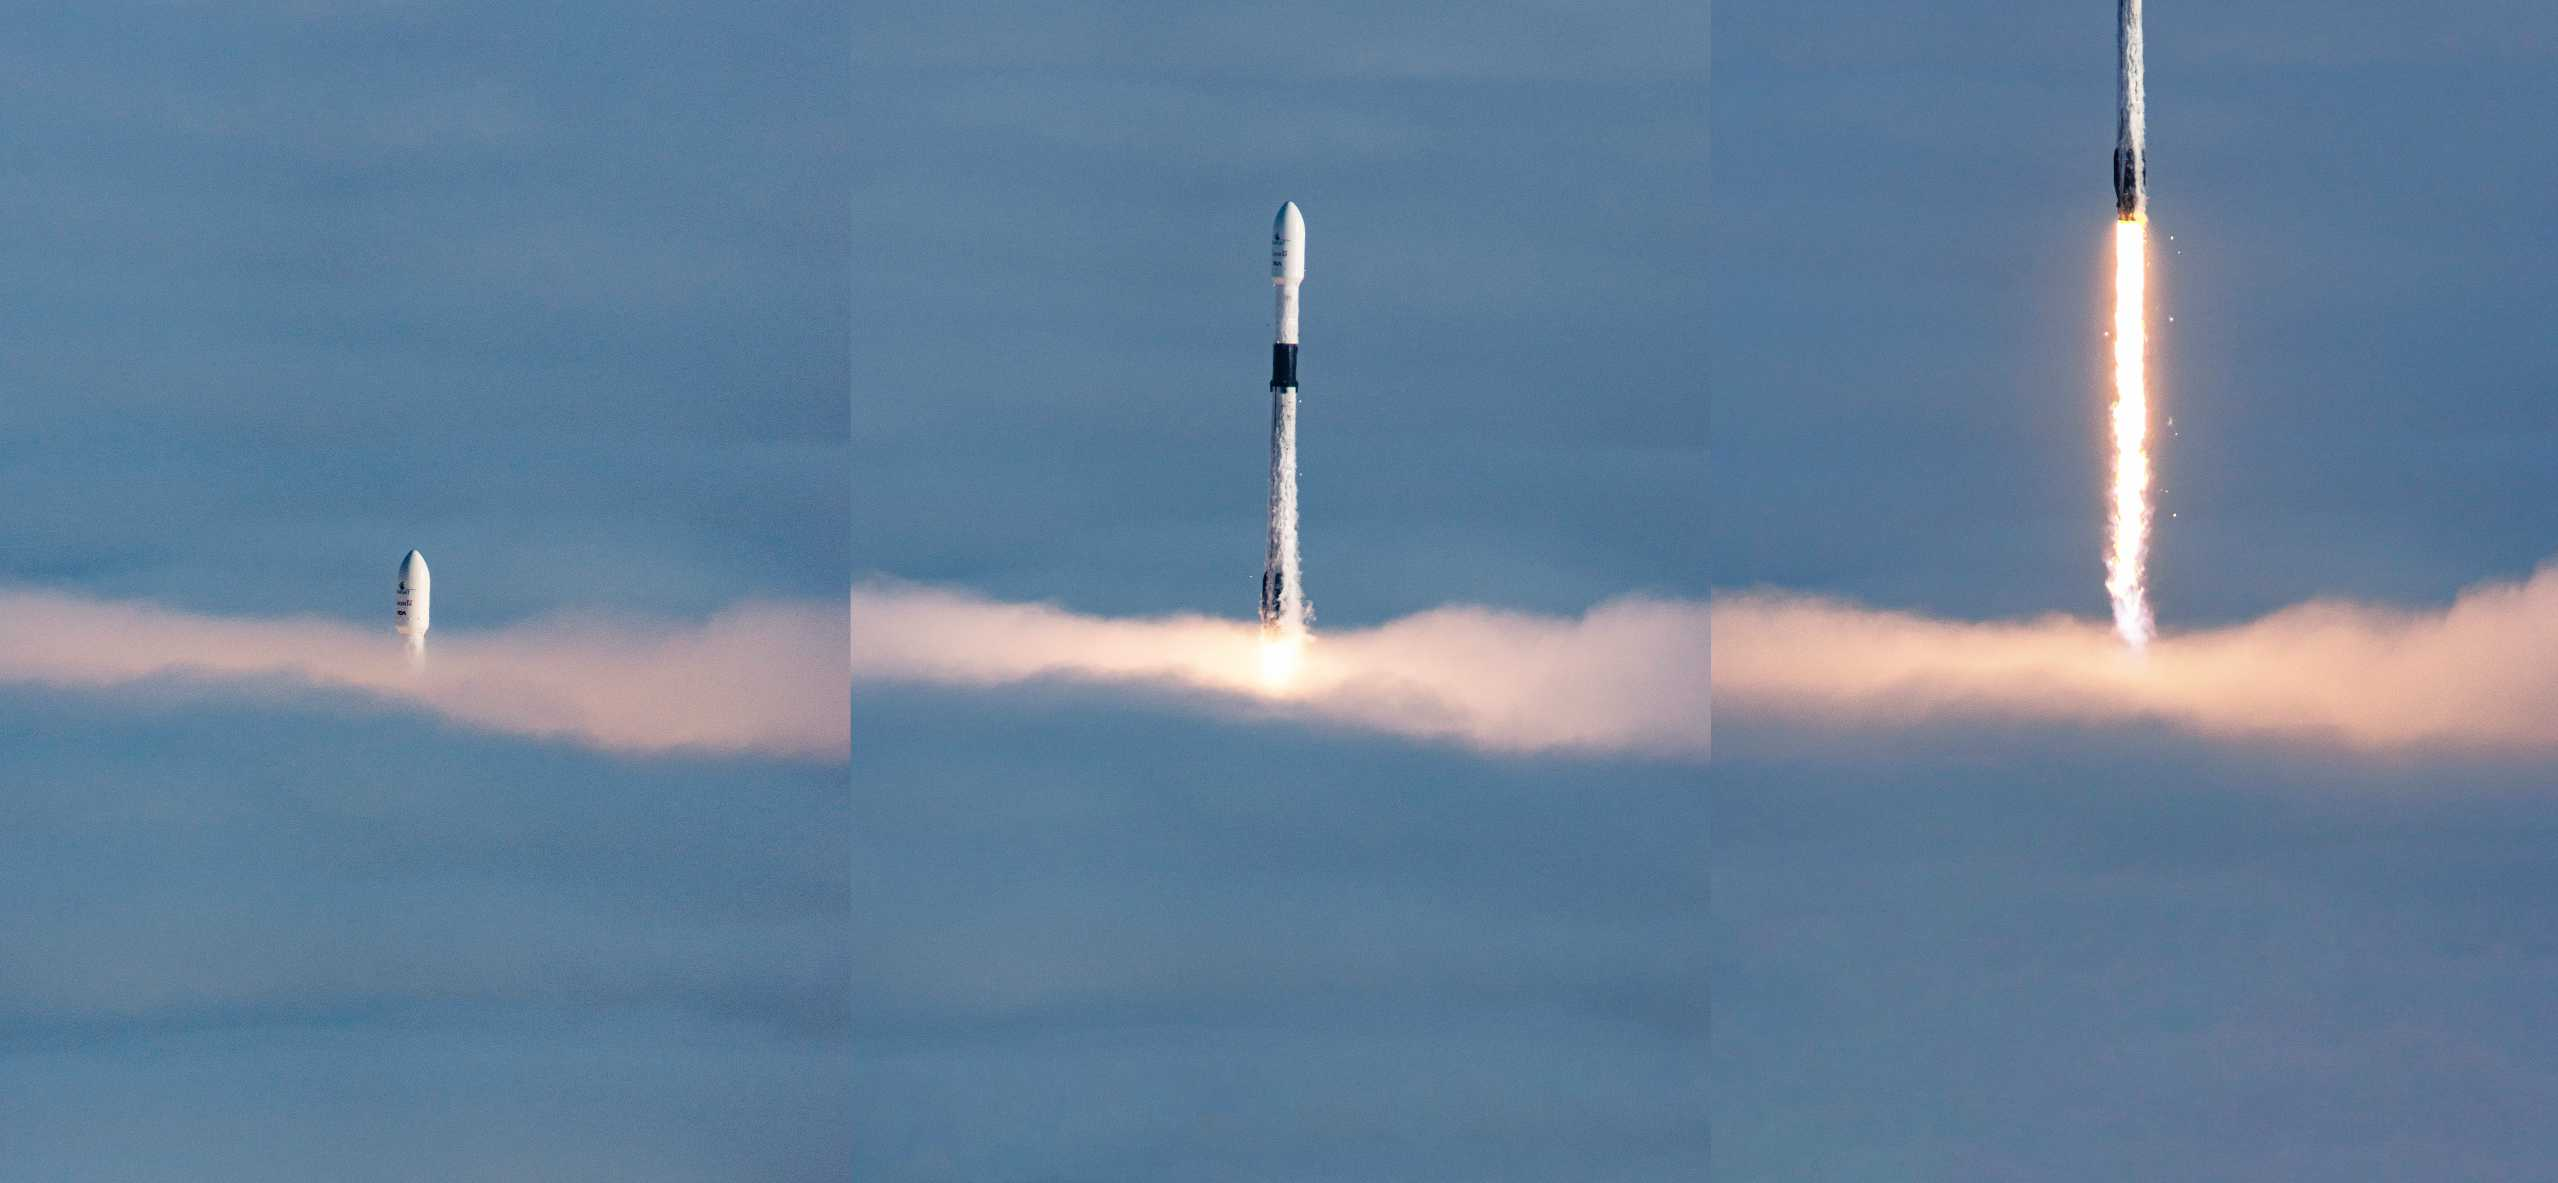 Falcon 9 B1051 RCM SLC-4E liftoff through fog (SpaceX) 1 edit 2 (c) 2